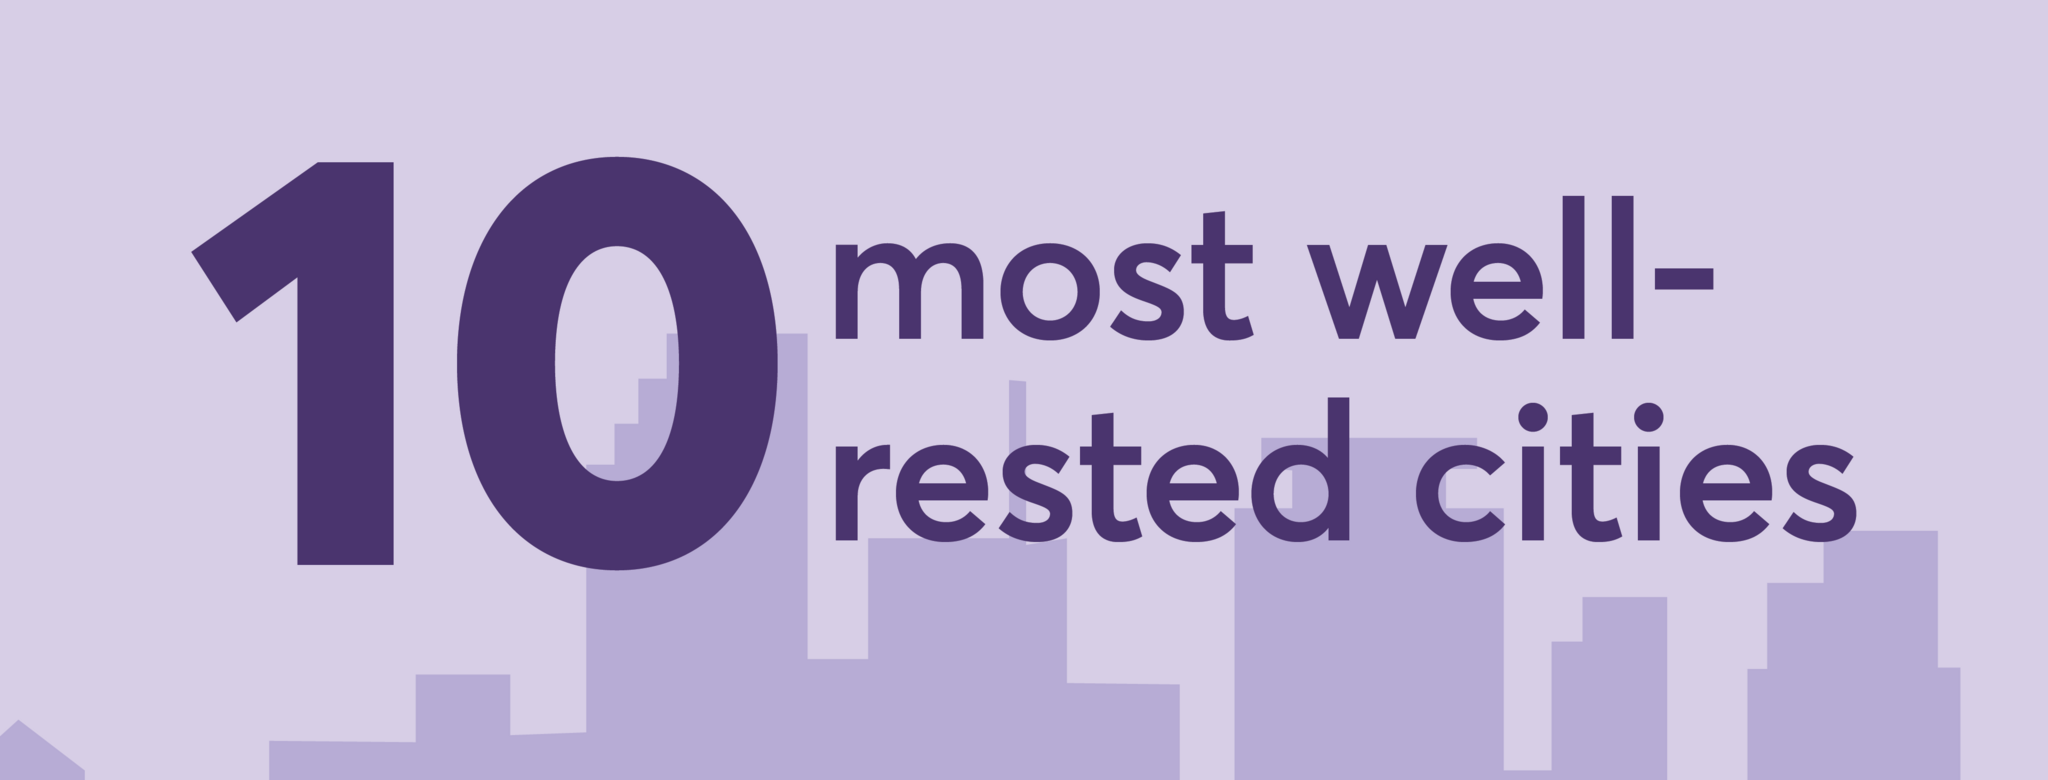 Top 10 most well-rested cities in front of purple city skyline